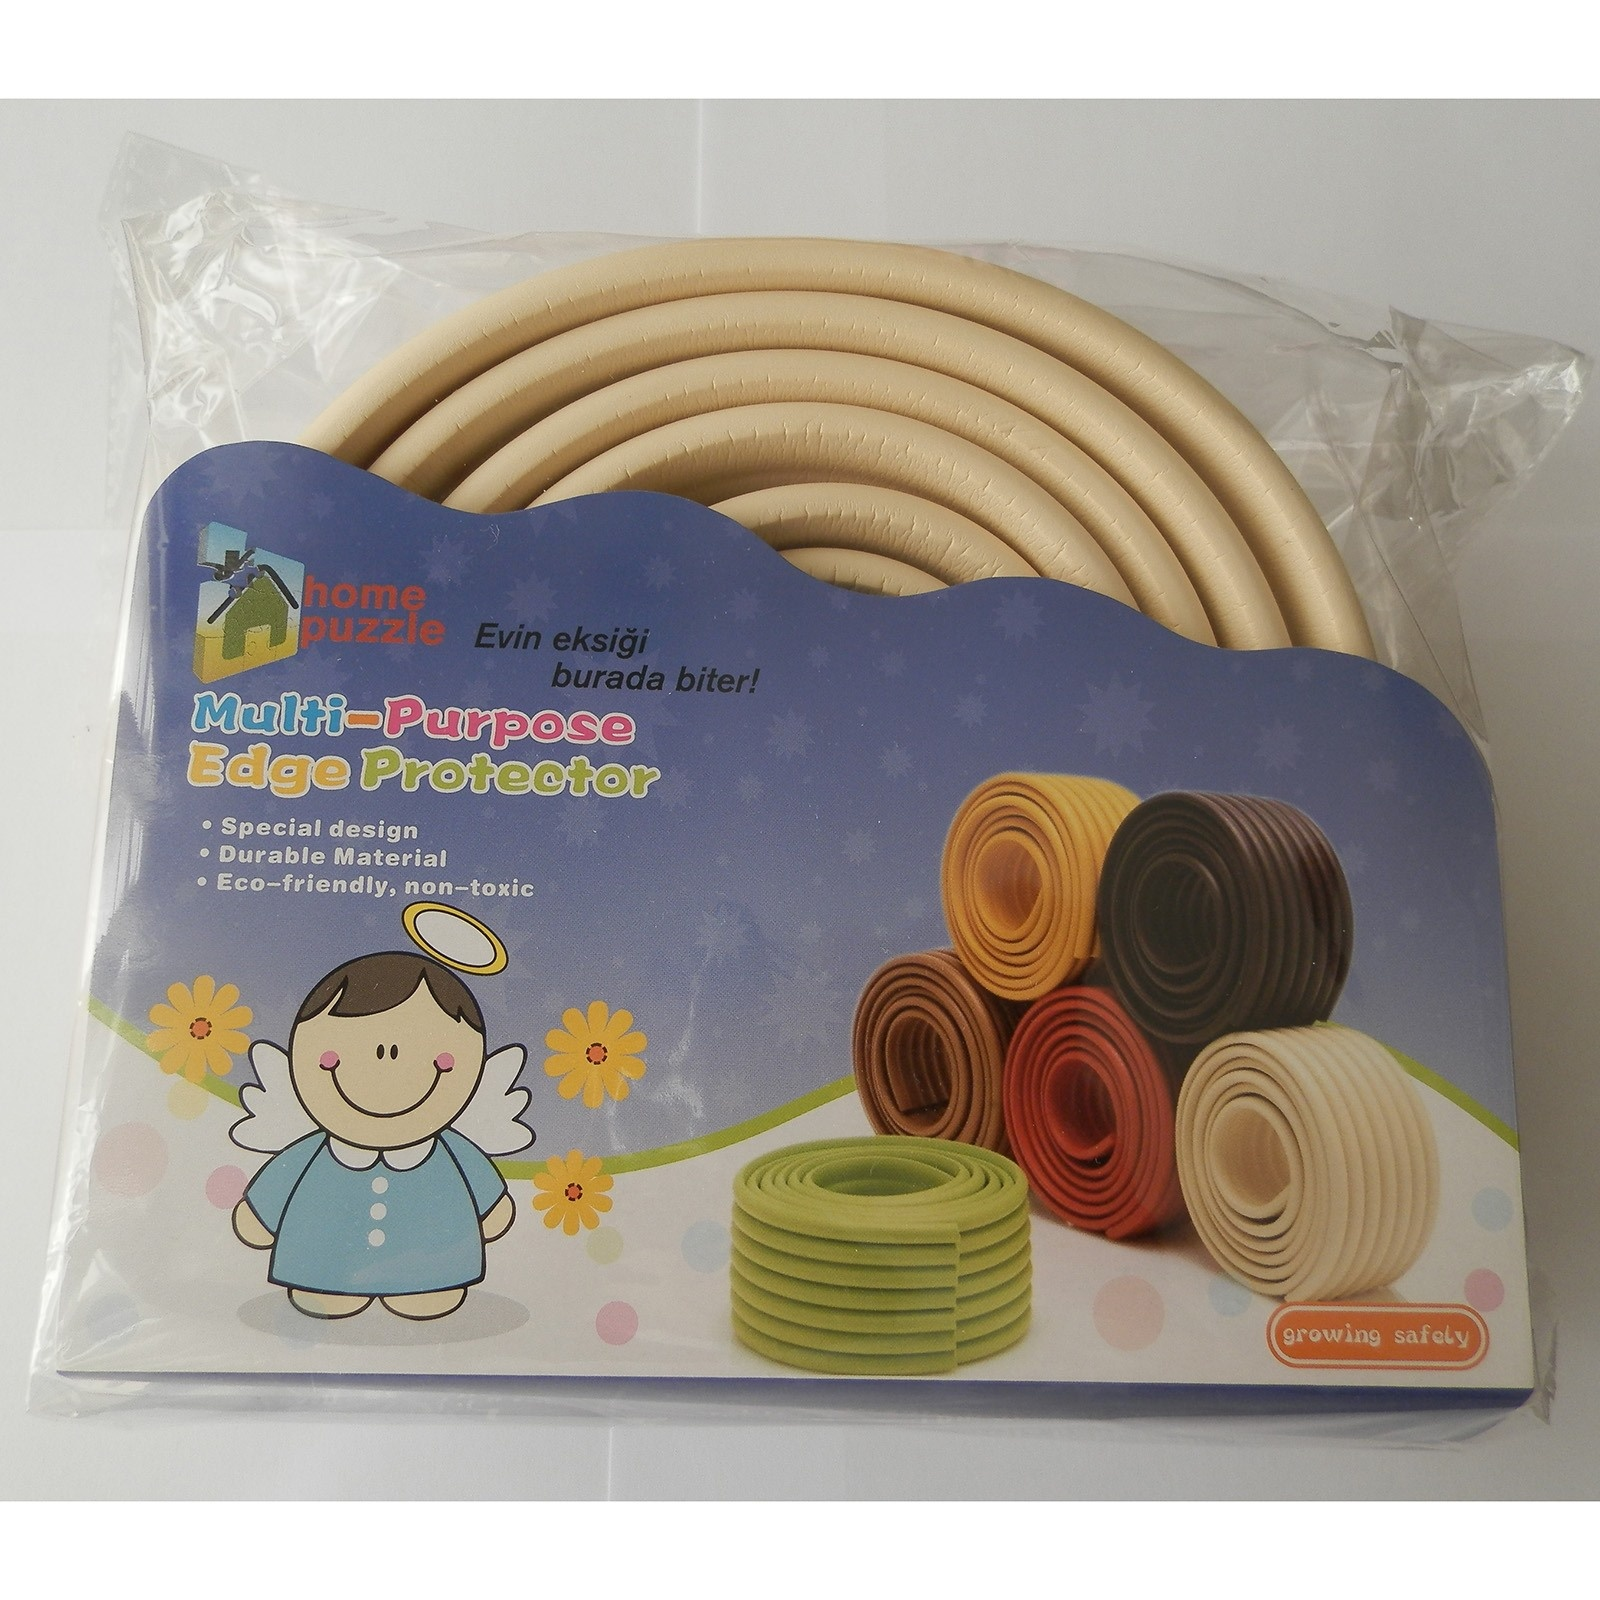 Ebebek Homepuzzle Multi Purpose Corner & Edge Protector